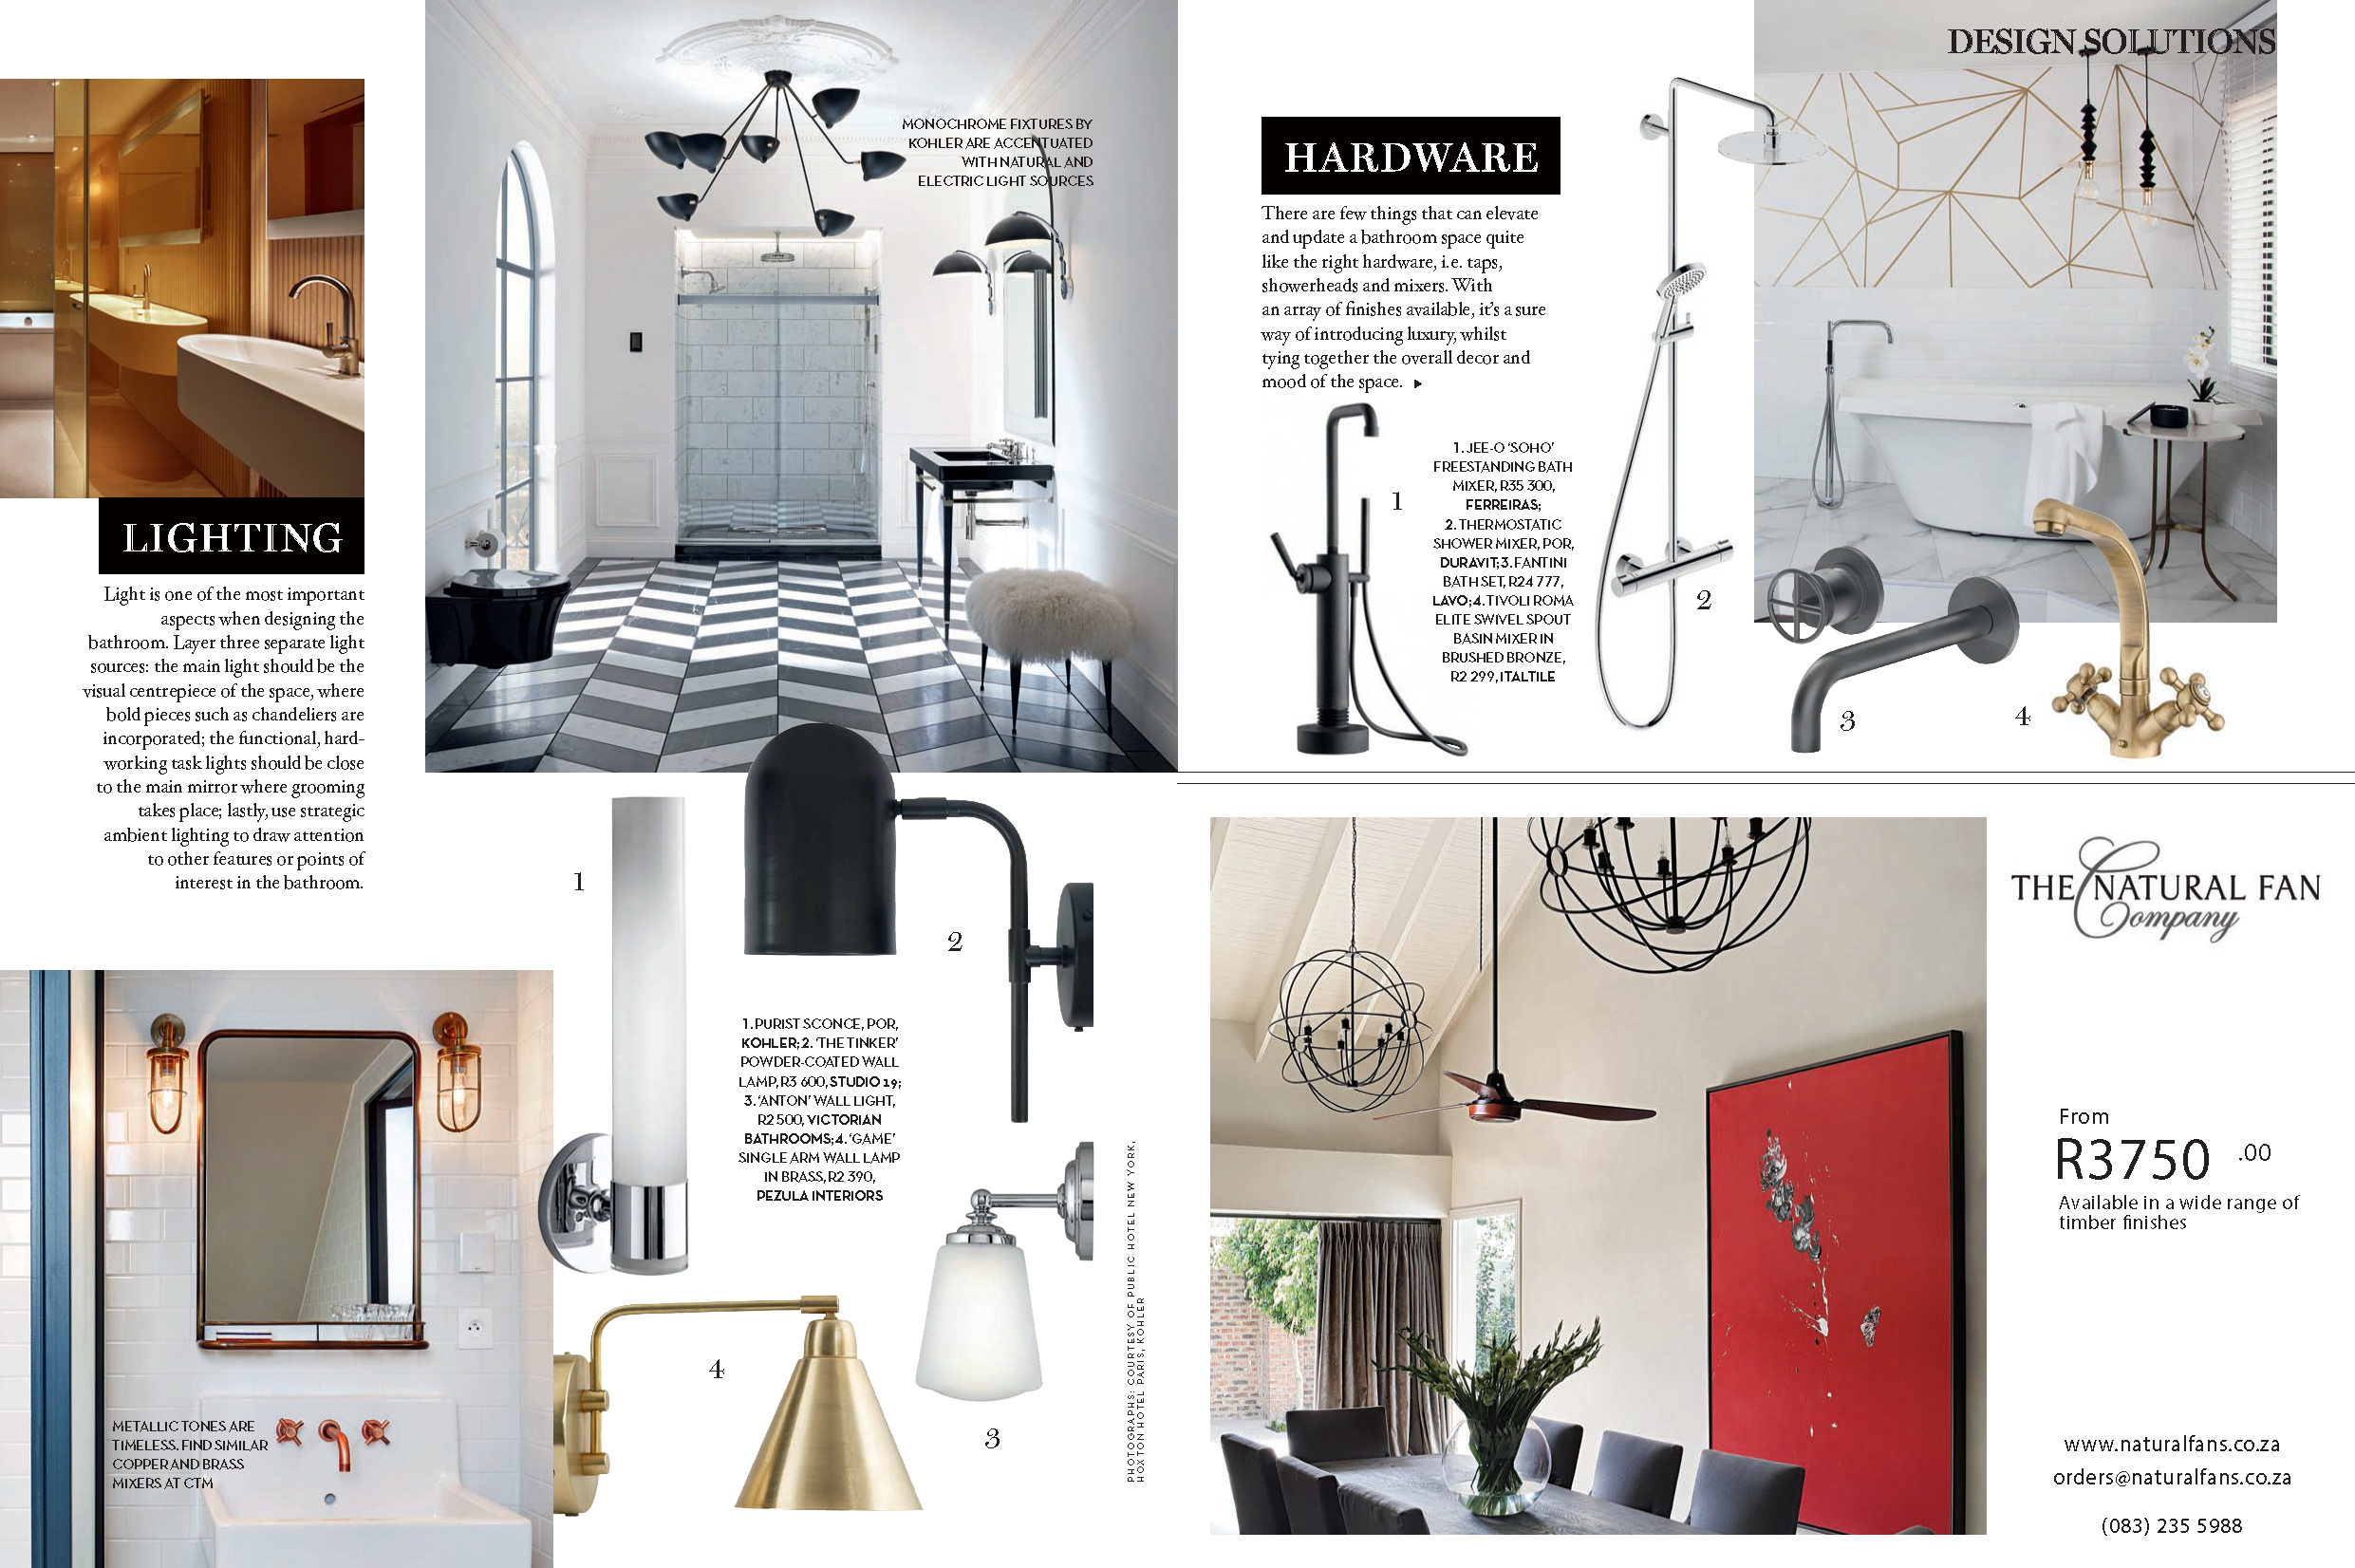 H&G Nov 18_DesignSolutions_Bathrooms_Page_3.png